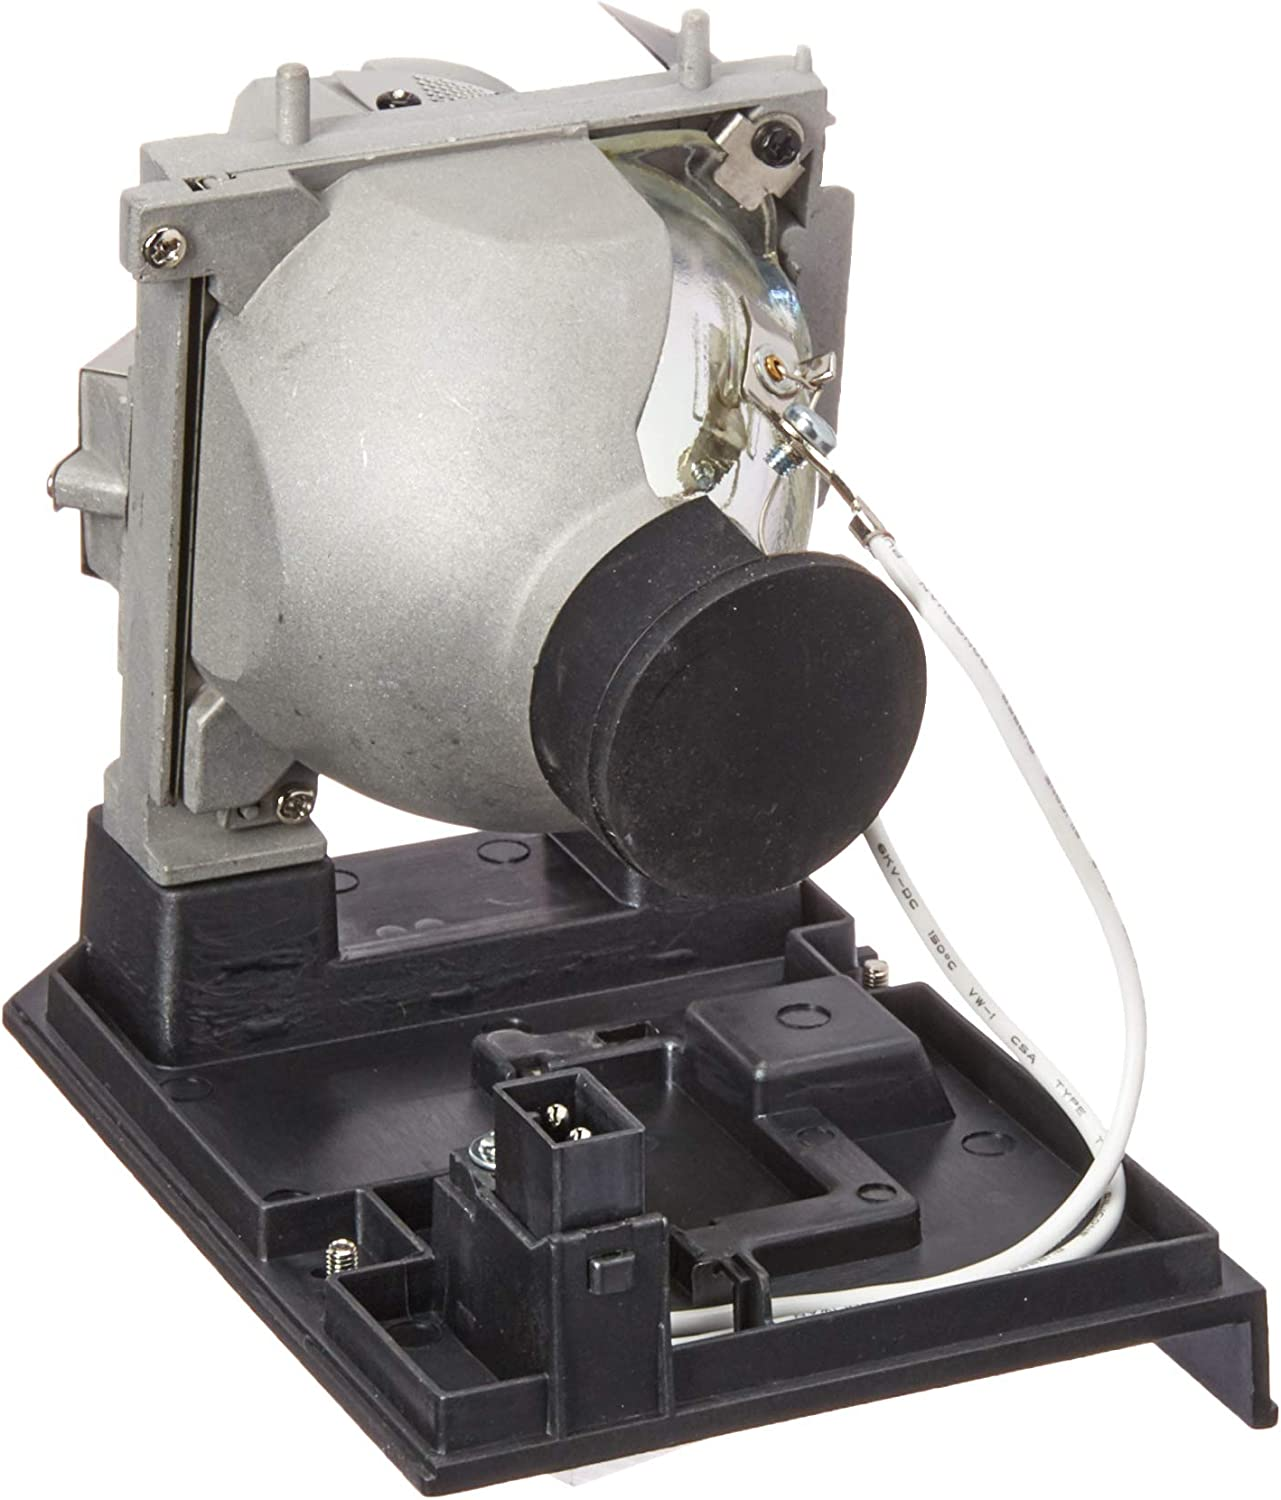 Dell Projector Replacement Lamp for Dell S500// S500wi Projectors